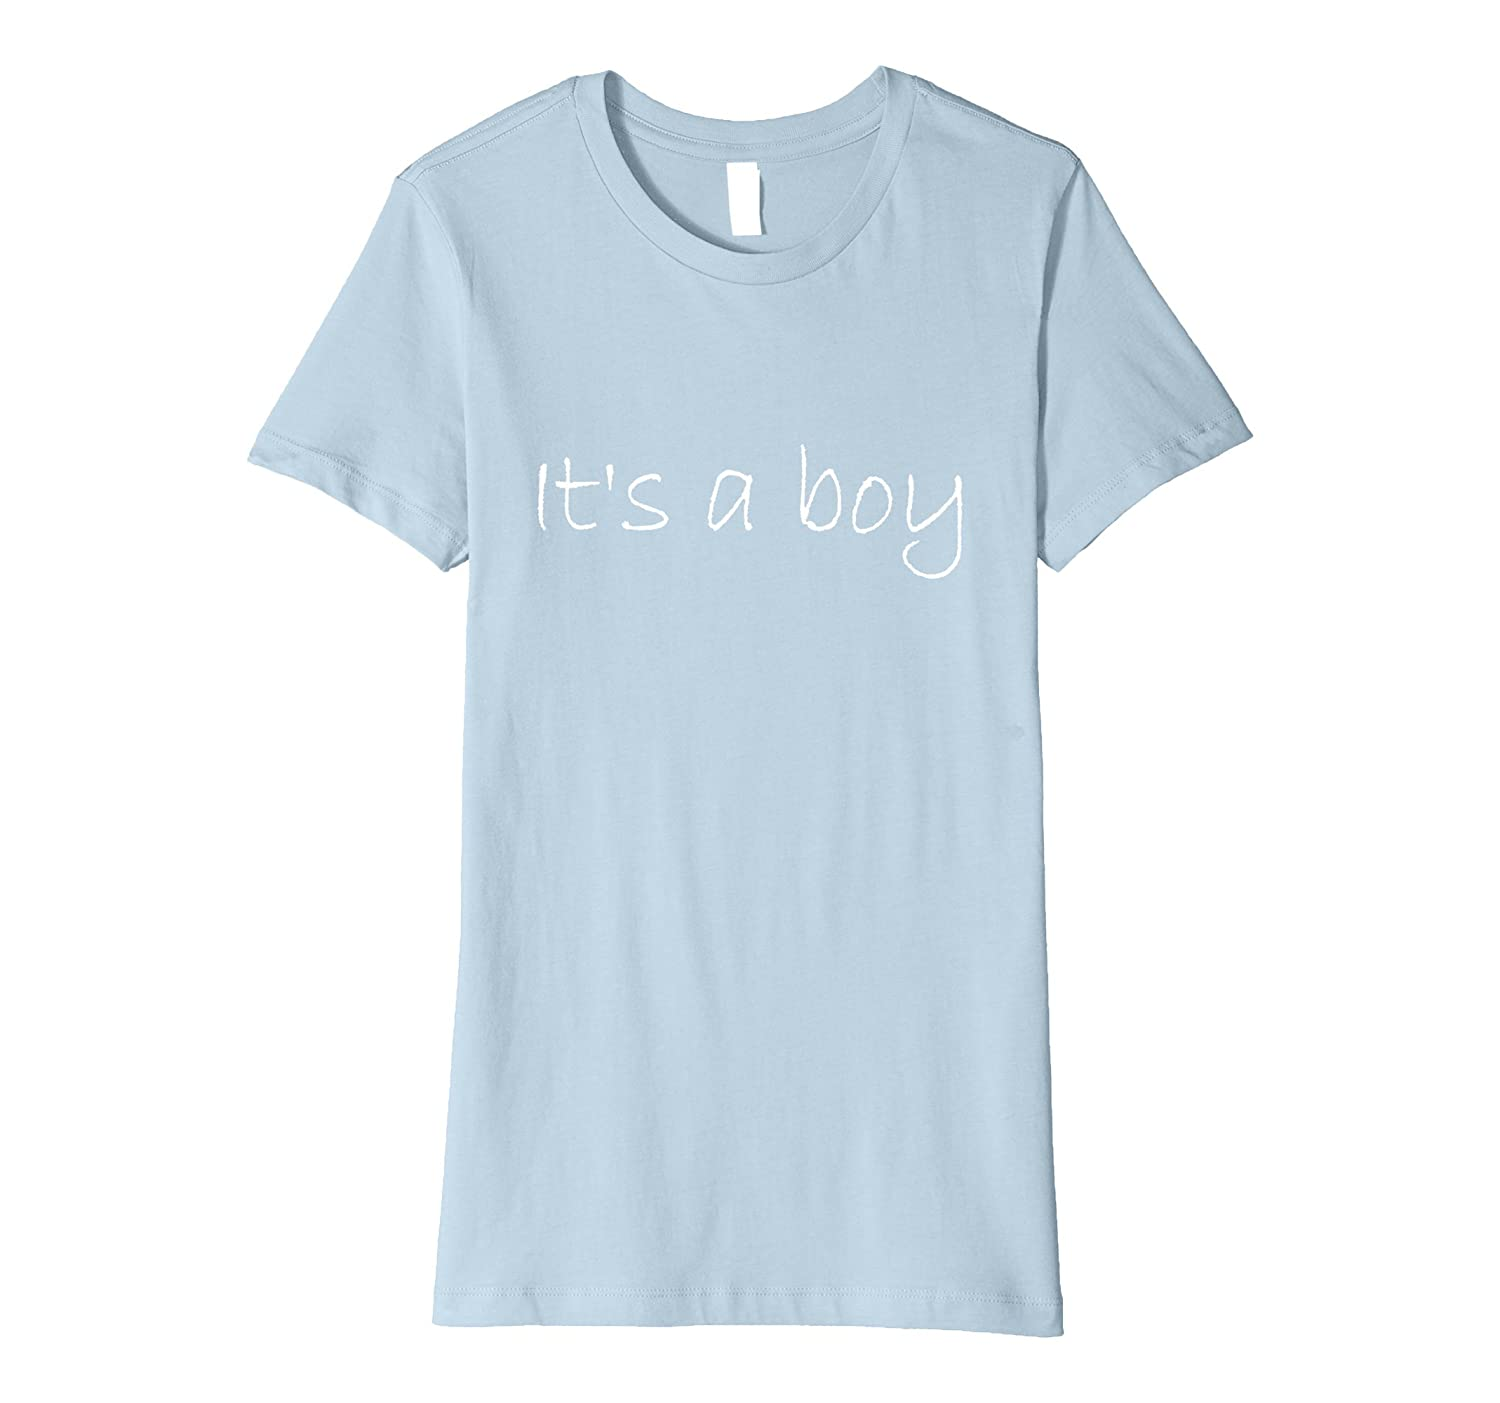 It's A Boy Blue Boy Baby Shower Adoption Gender Reveal Shirt